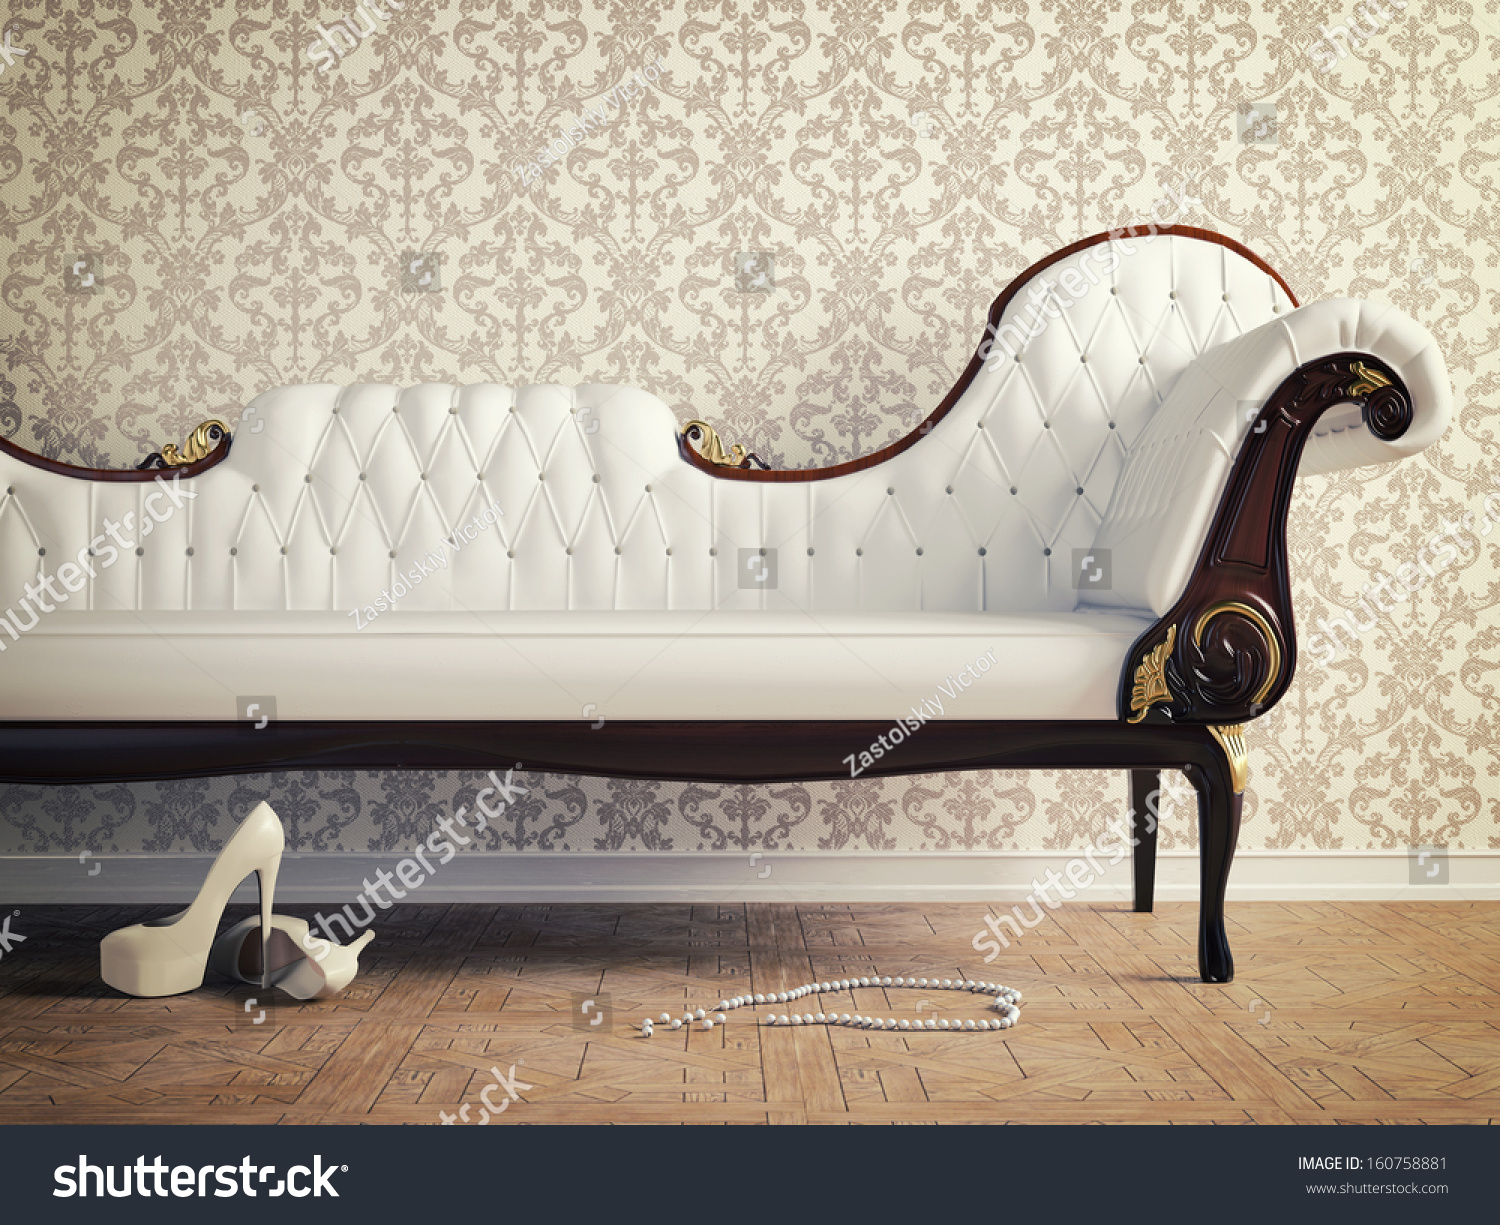 vintage sofa and wallpaper wall retro style illustration. Black Bedroom Furniture Sets. Home Design Ideas